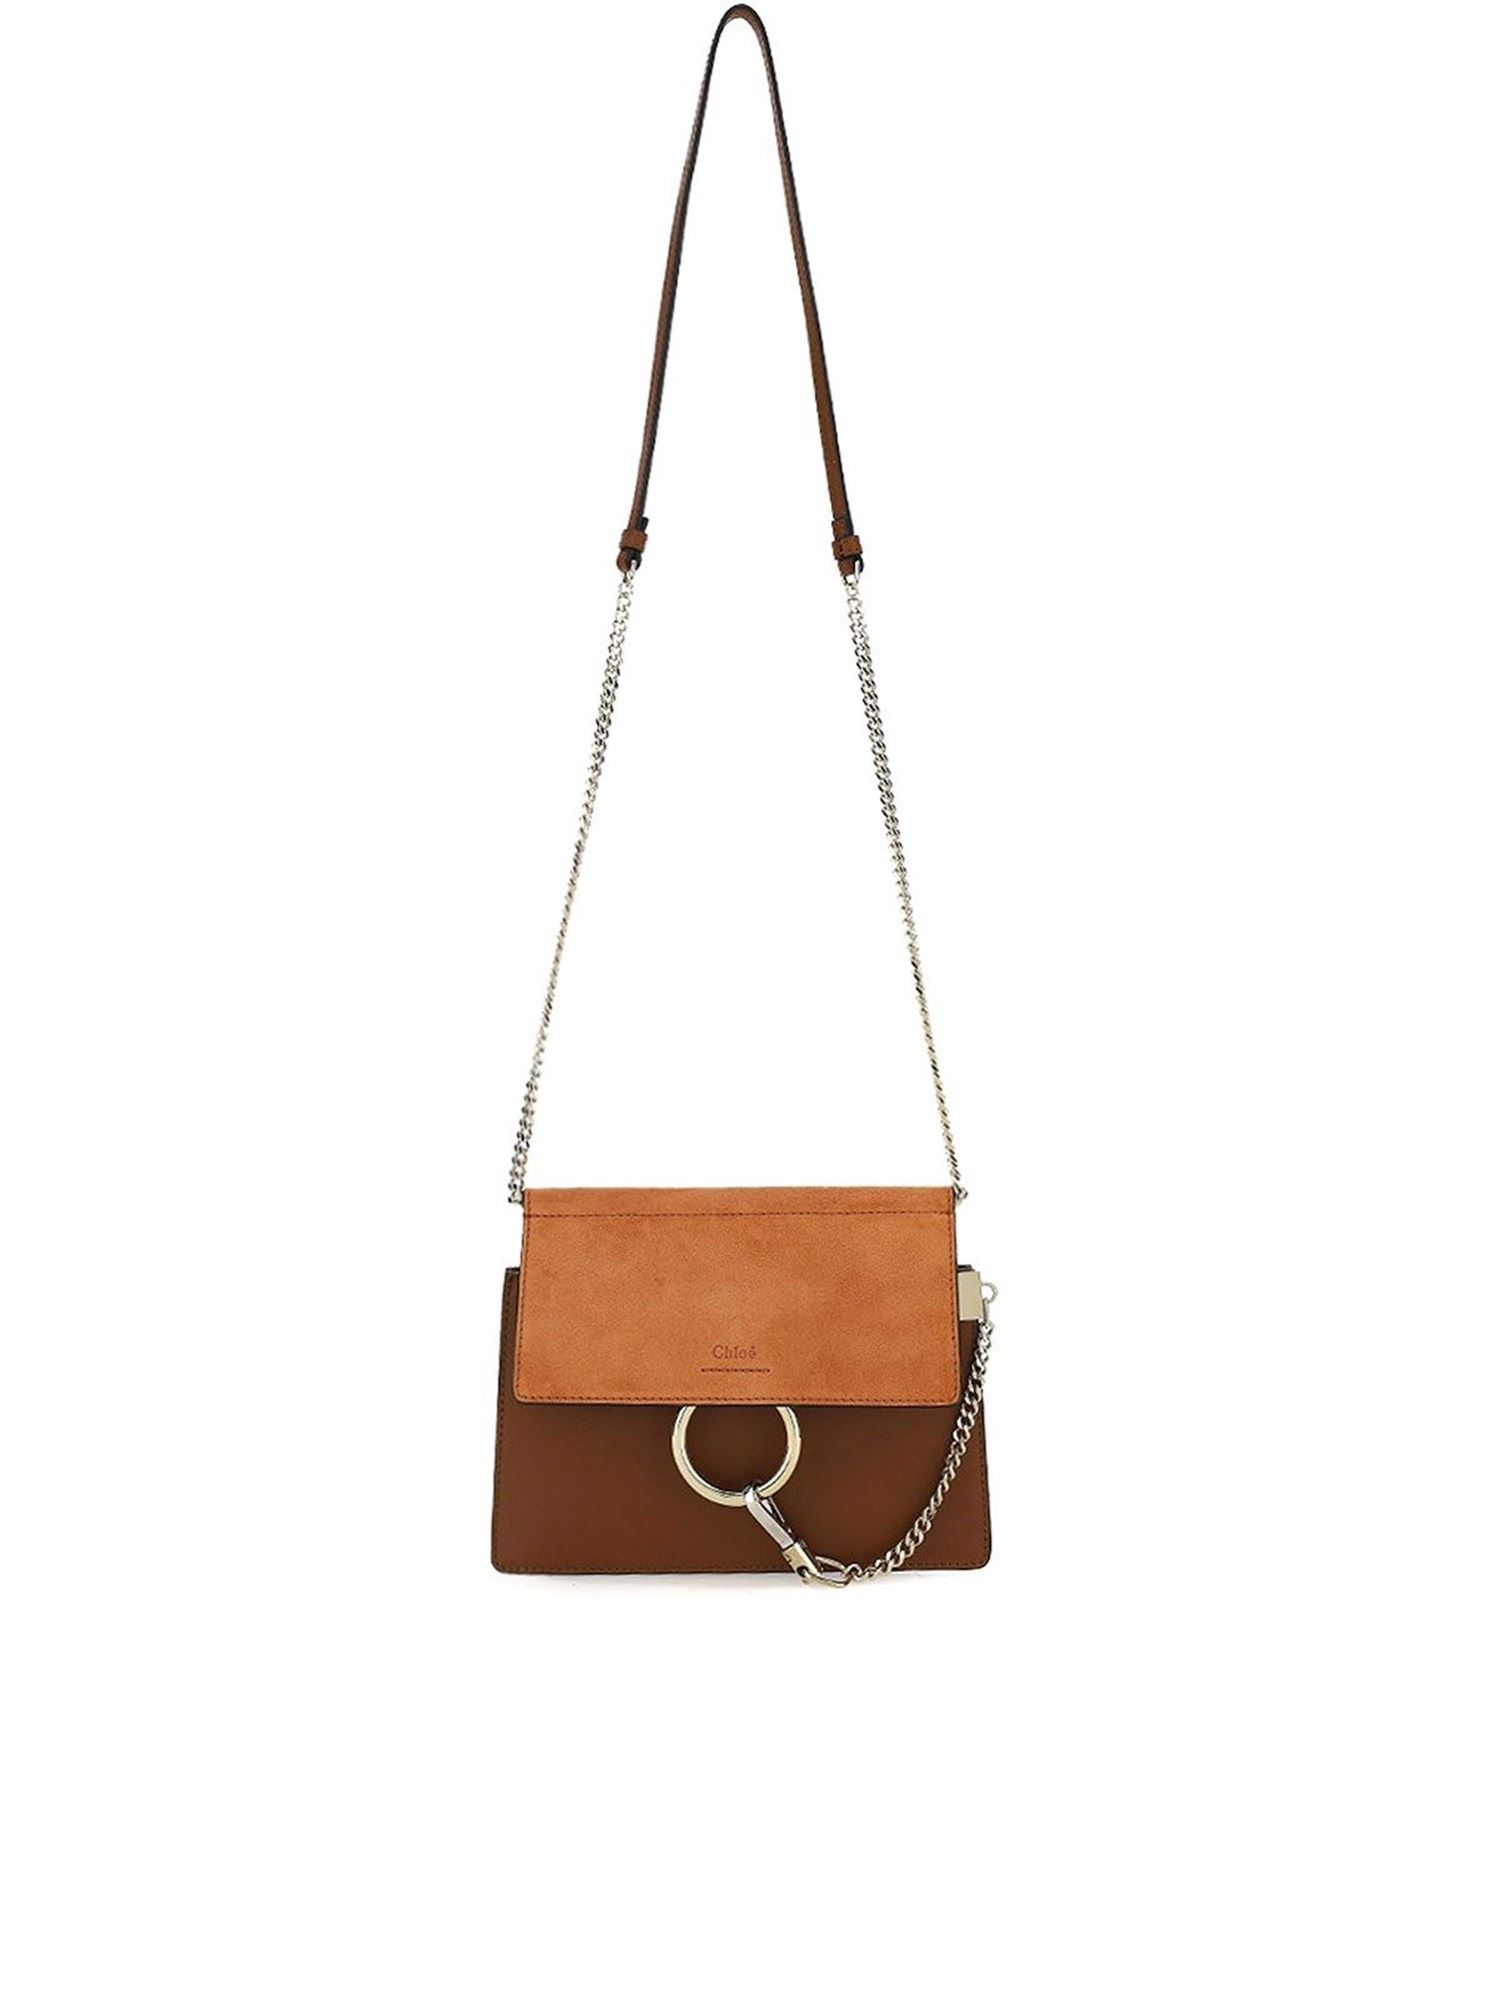 Chloé FAYE TWO-TONE BAG IN BROWN